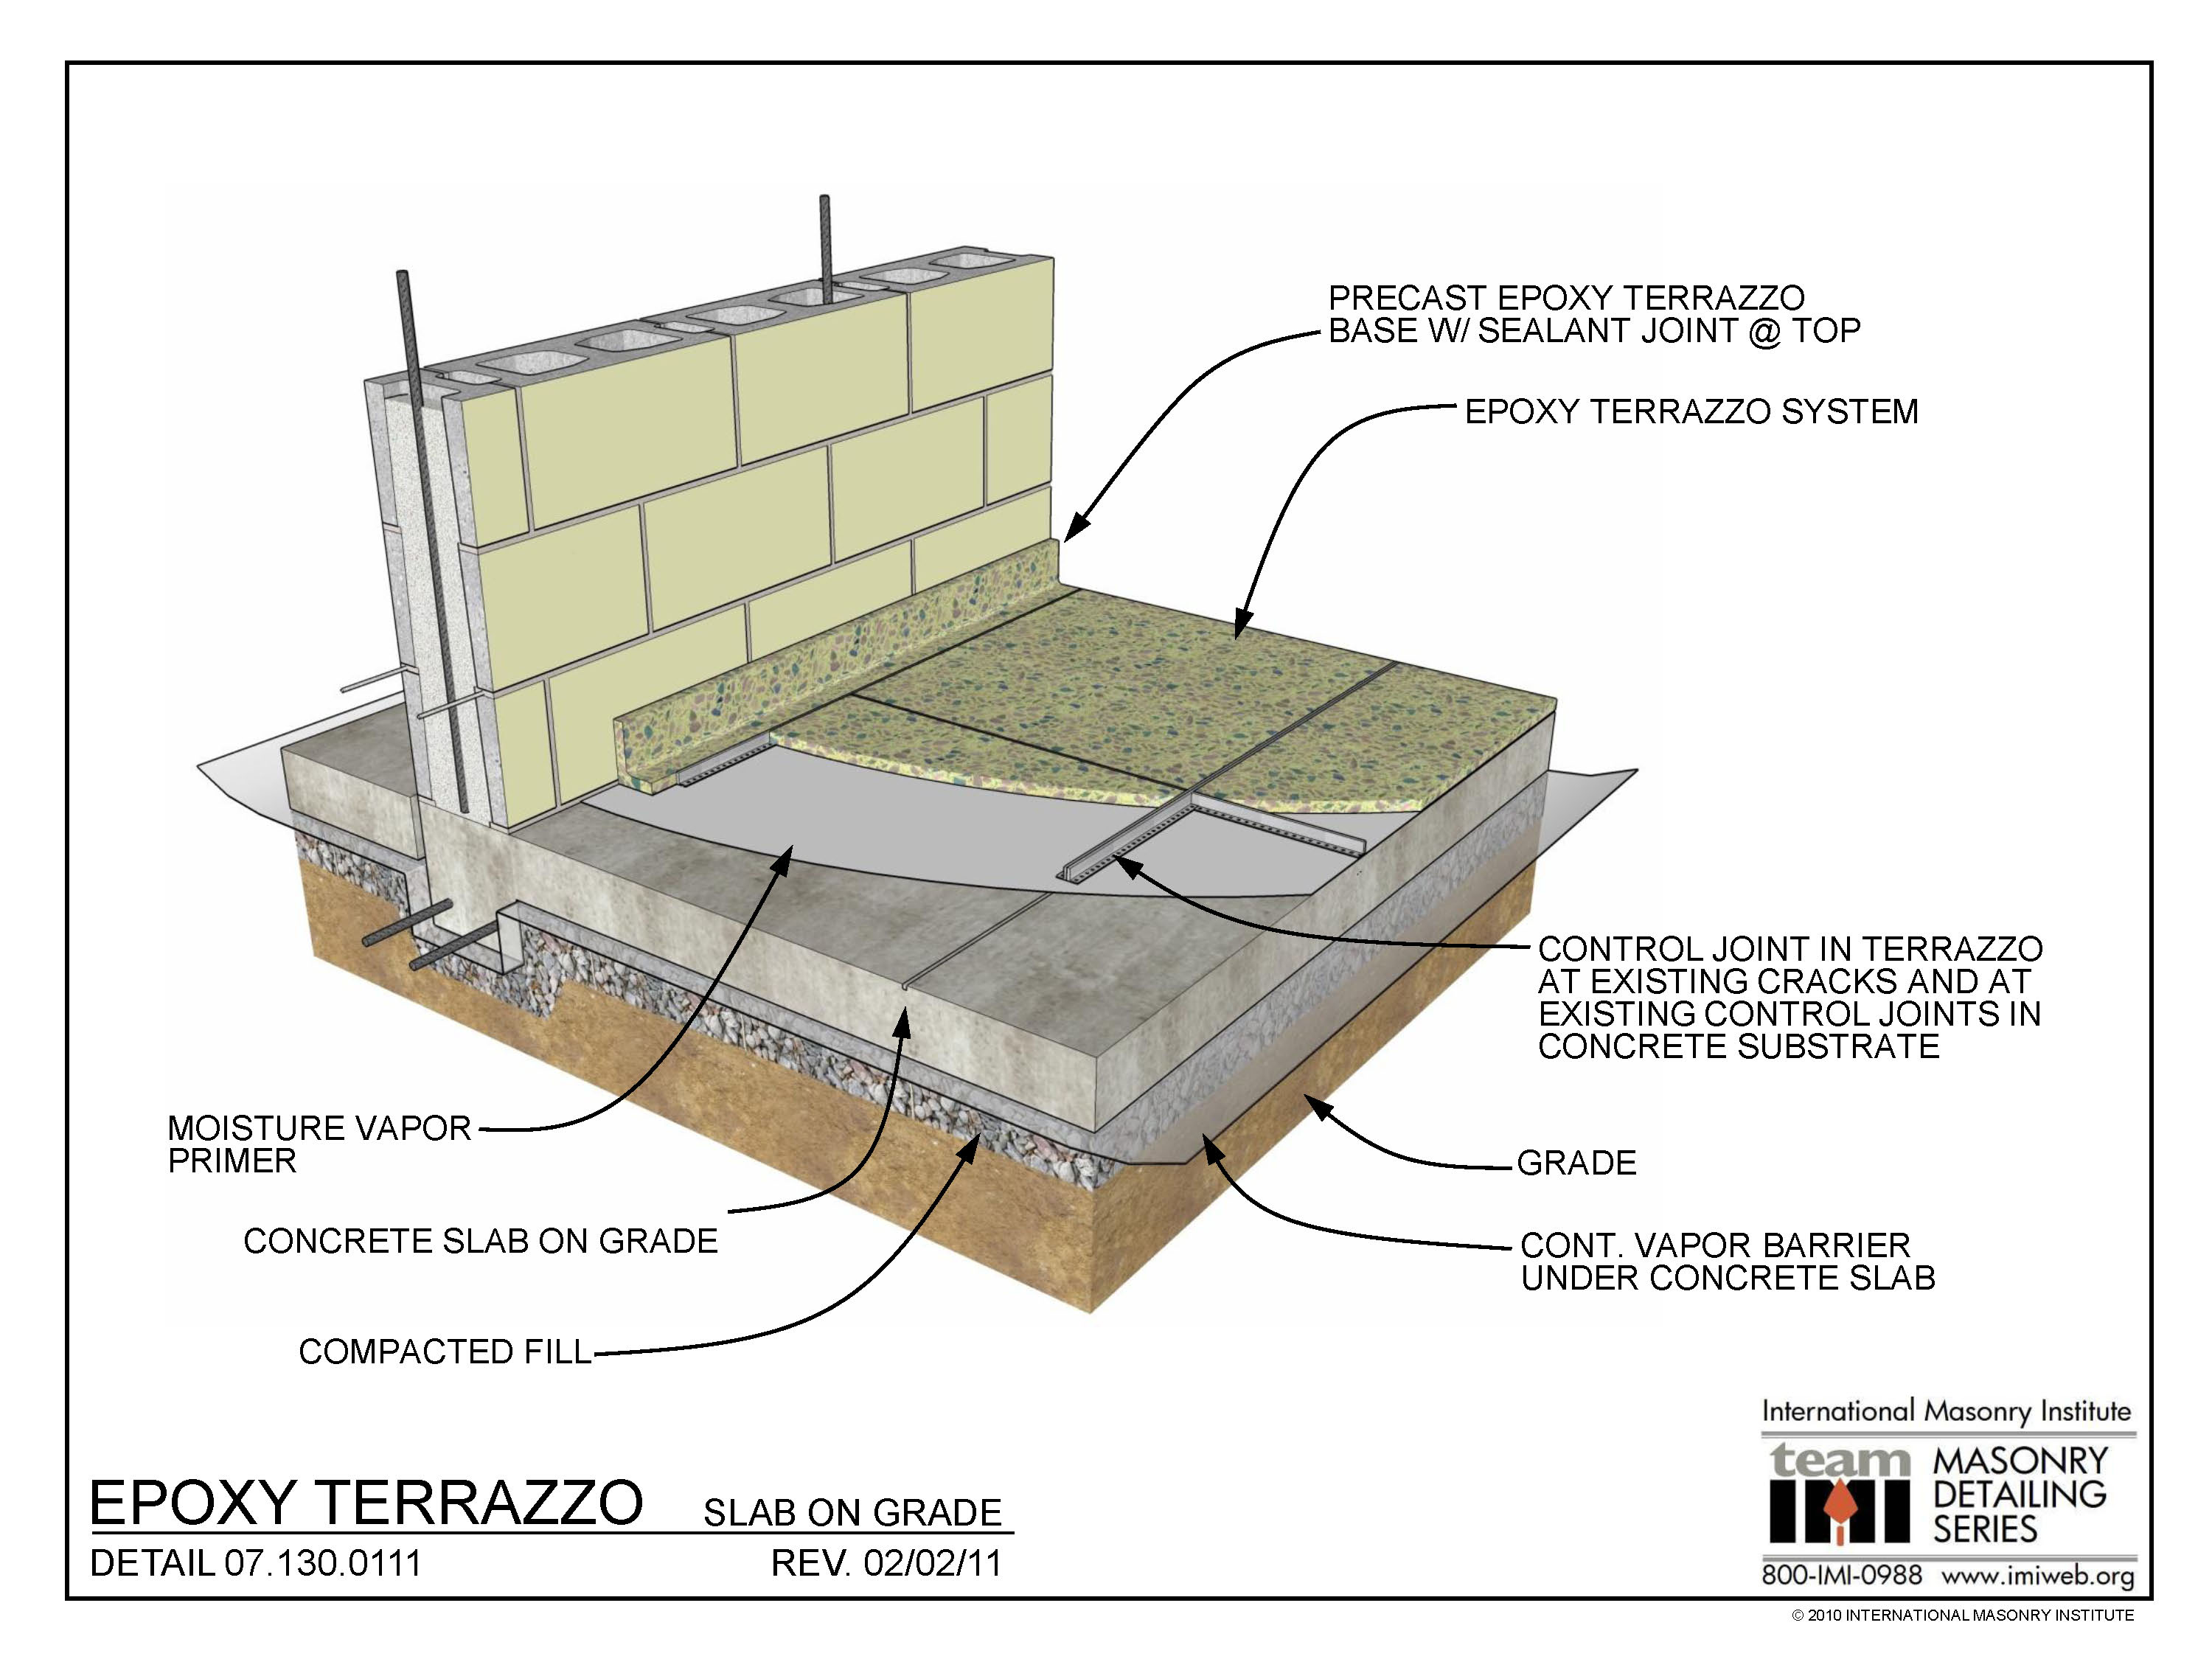 Concrete Slab Plans Of Epoxy Terrazzo Slab On Grade